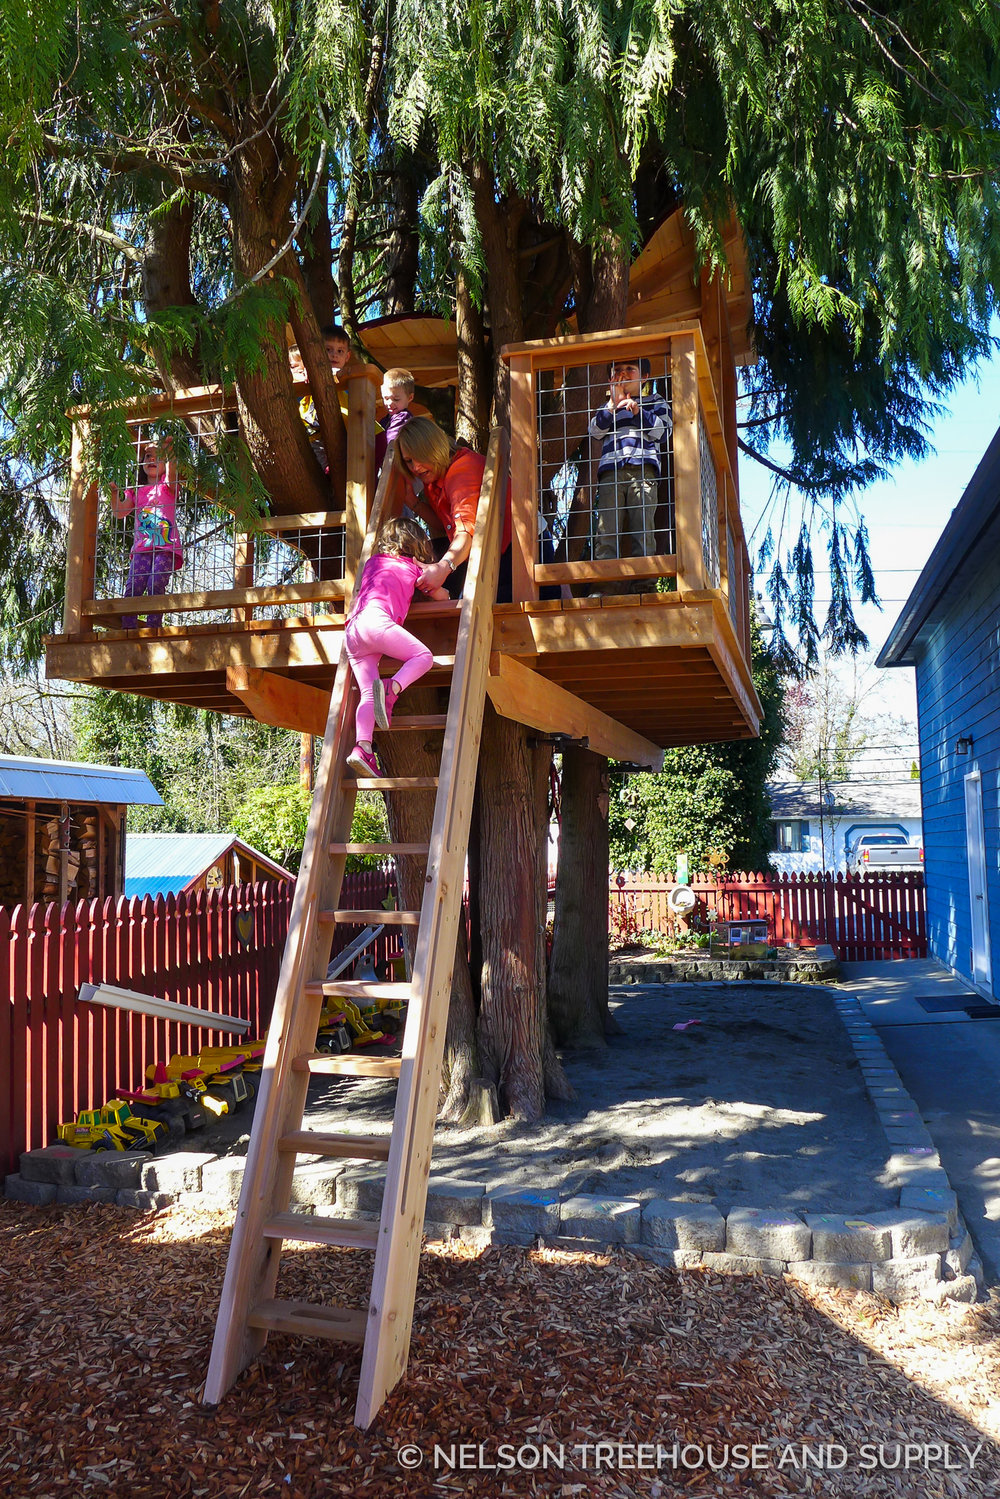 Toby helped build this treehouse for The montessori school that his kids attend. He hopes to build one at home for his own kids soon!